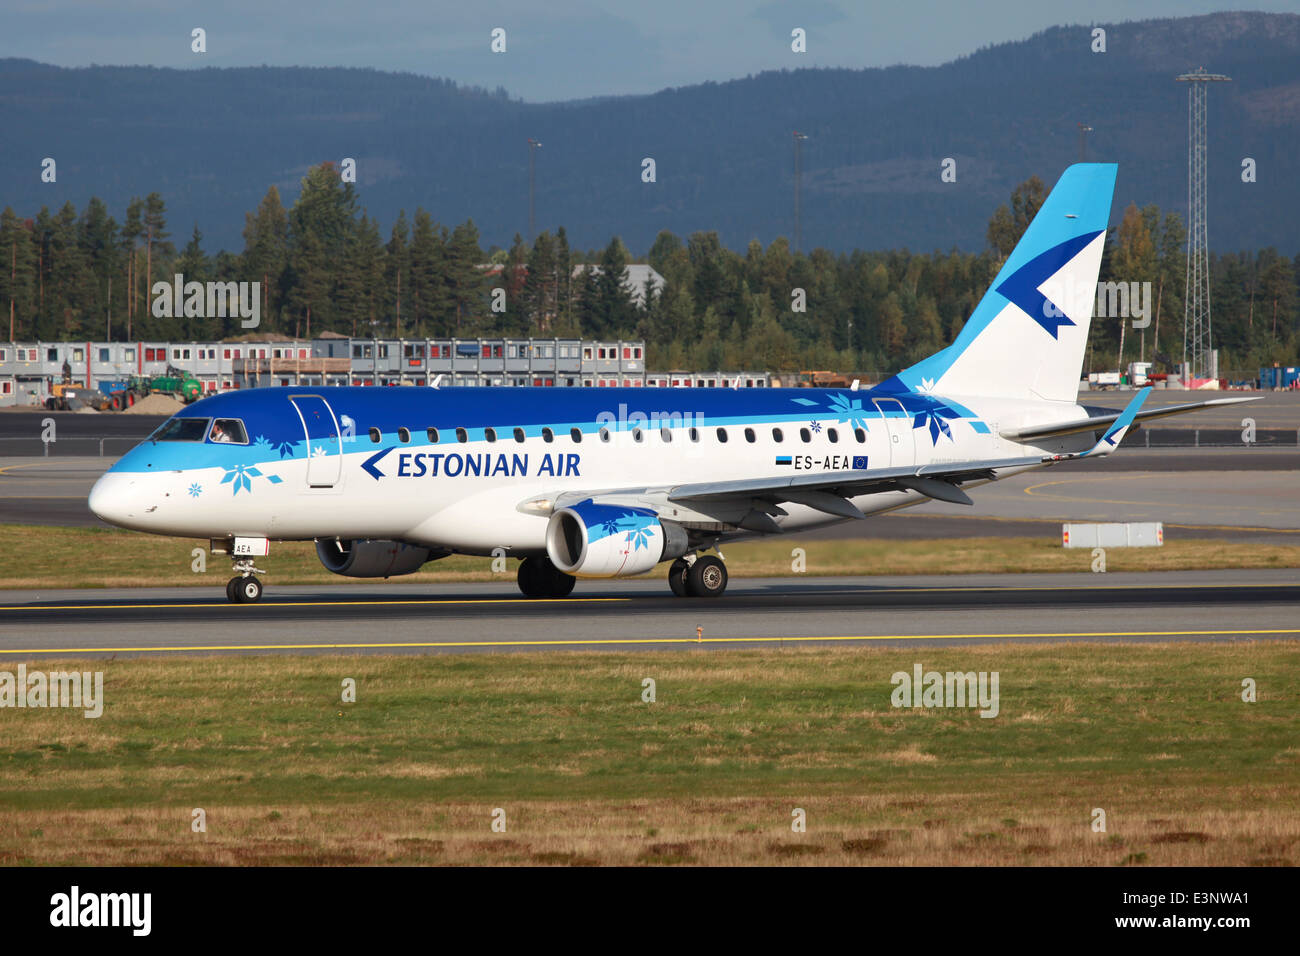 Estonian Air Embraer 170 jet airliner with the registration ES-AEA - Stock Image